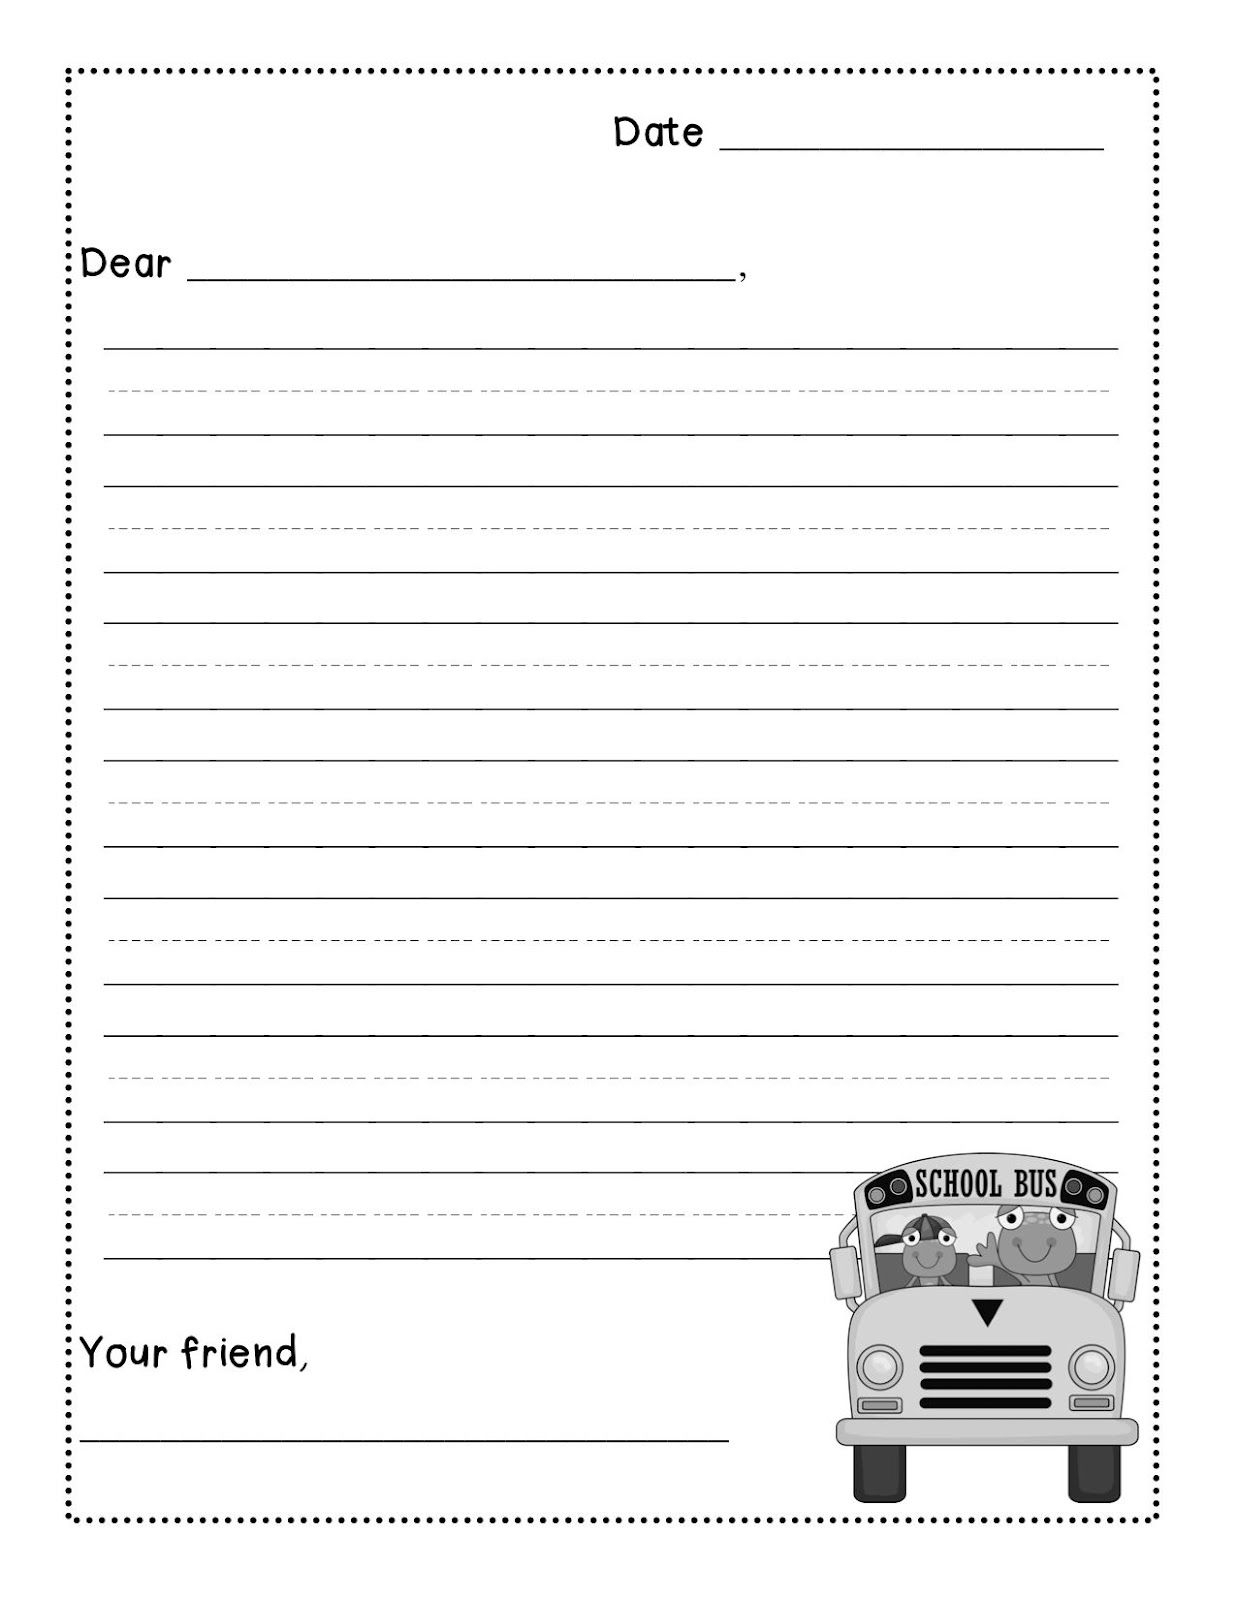 Friendly Letter Writing Freebie - Levelized Templates Up For throughout Letter Writing Worksheets For Grade 5